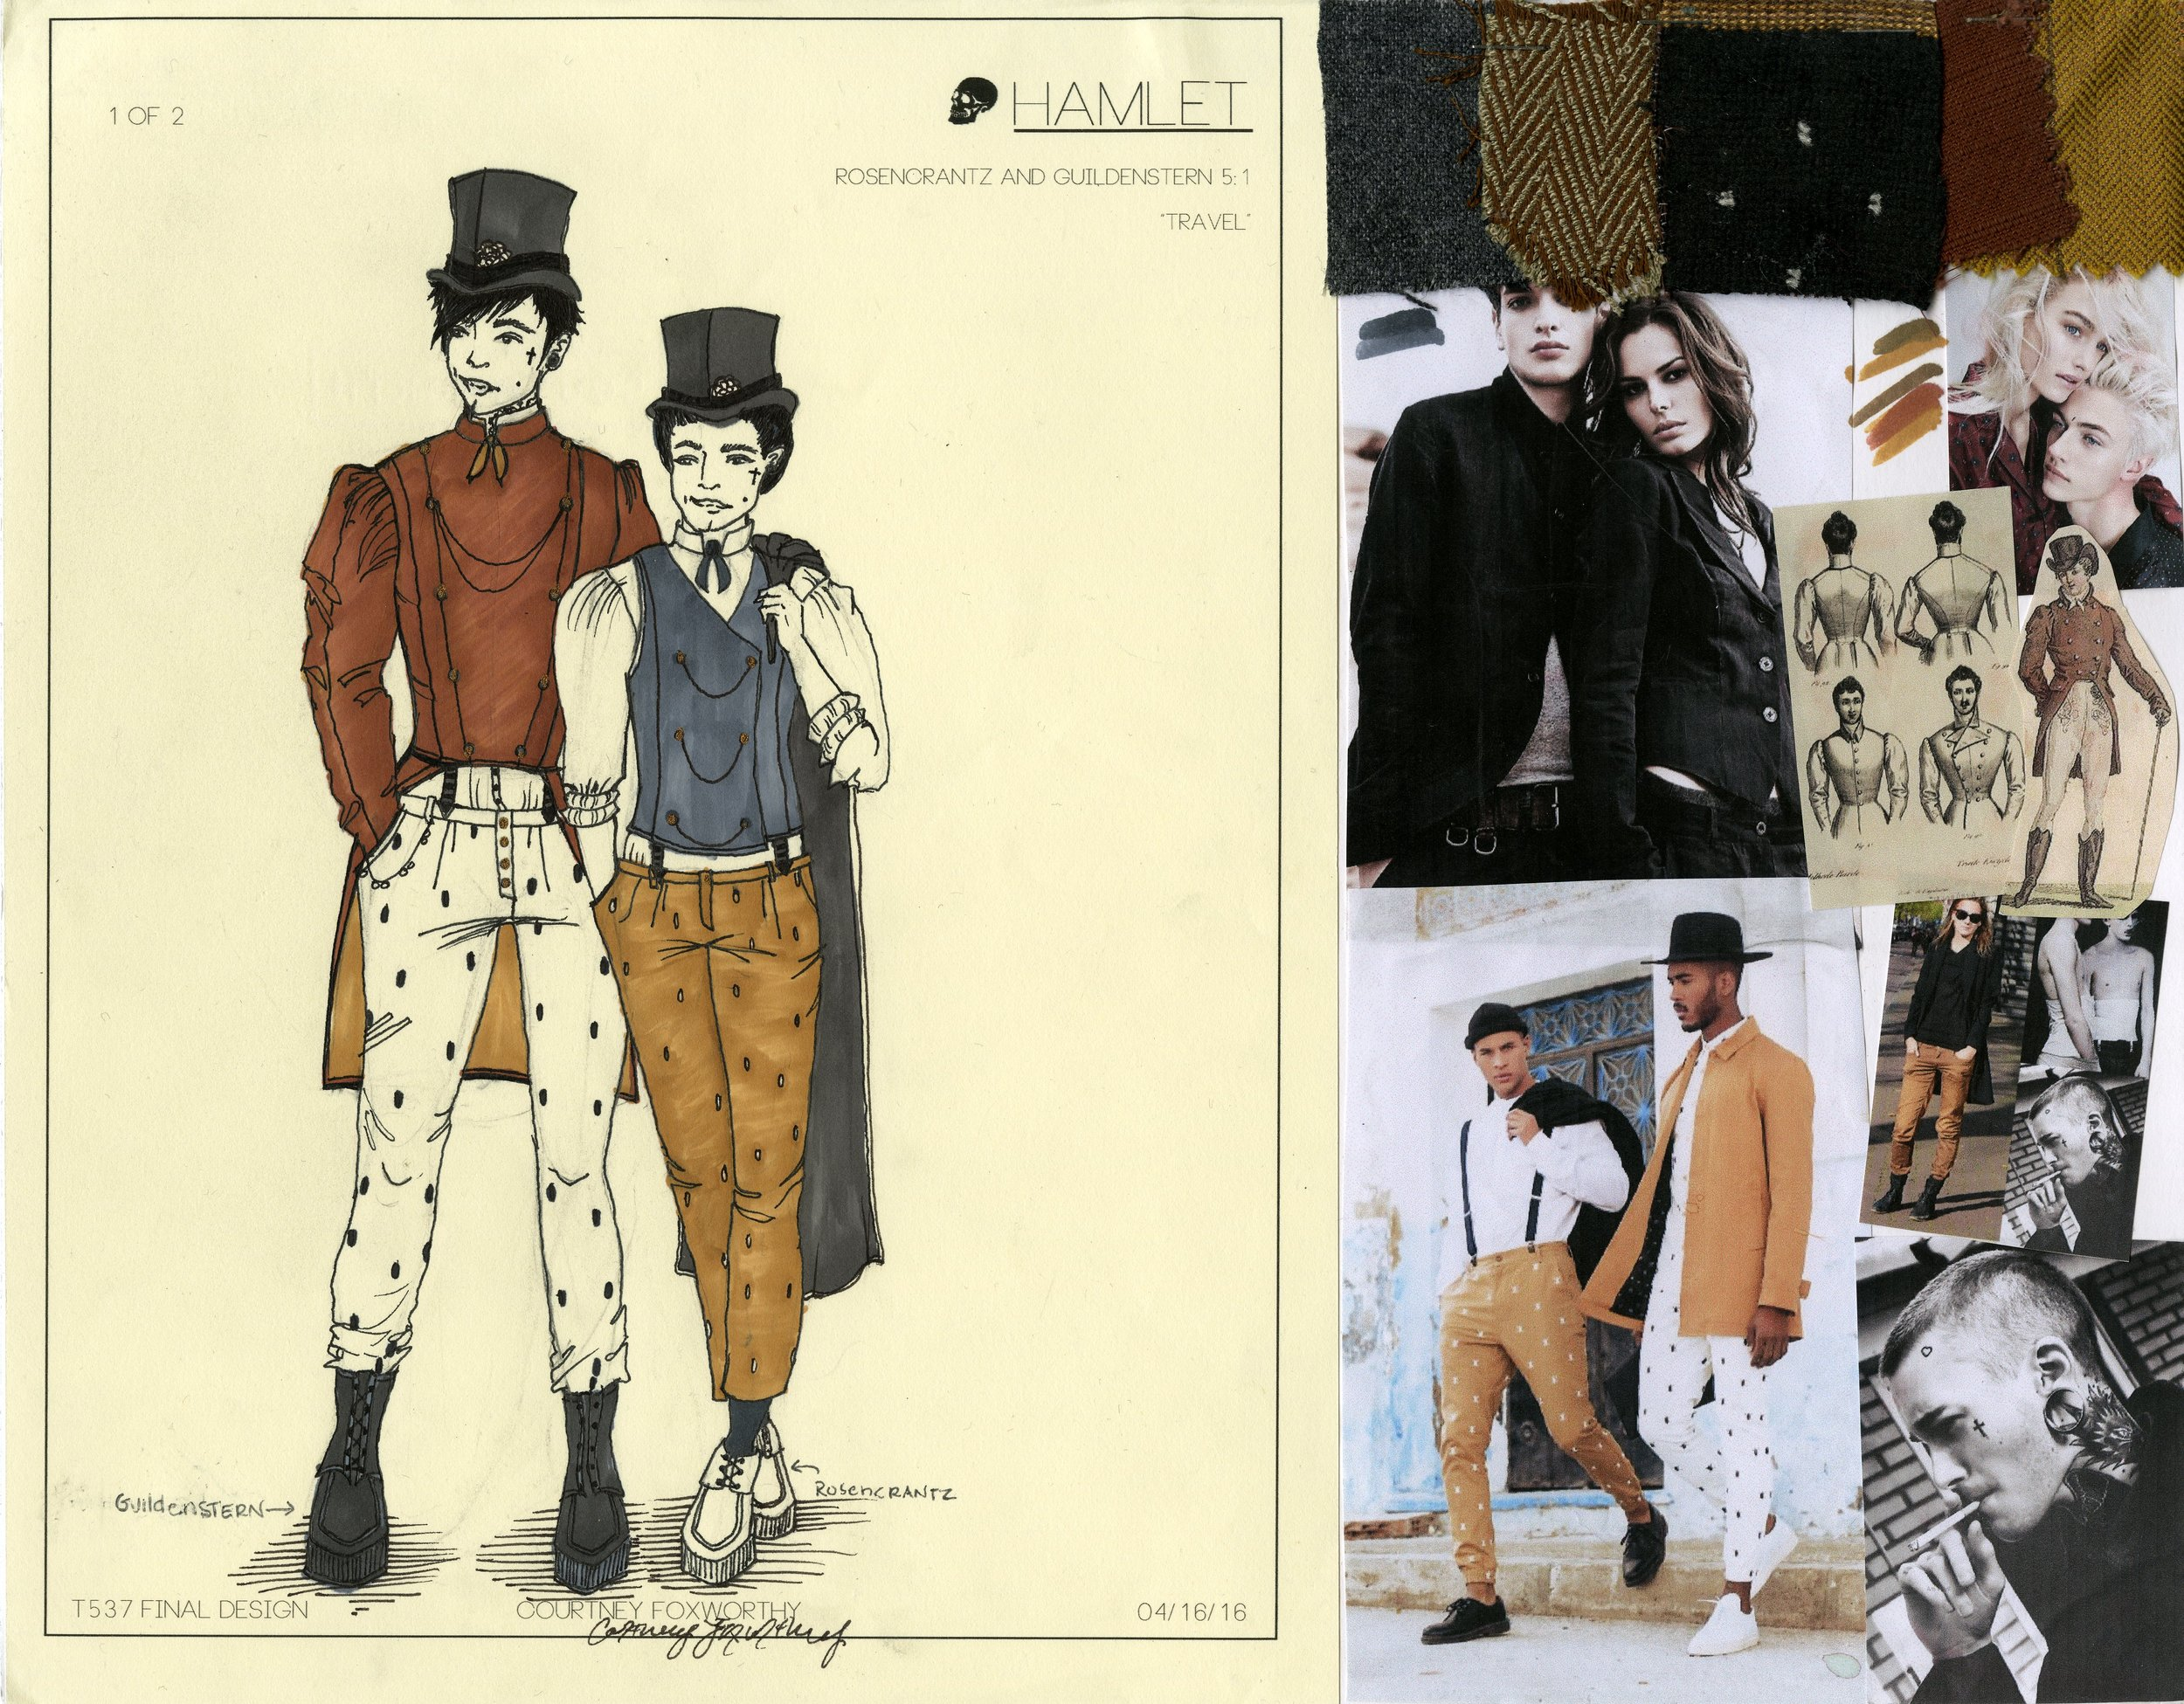 Rosencrantz and Guildenstern look 1 (travel clothes)